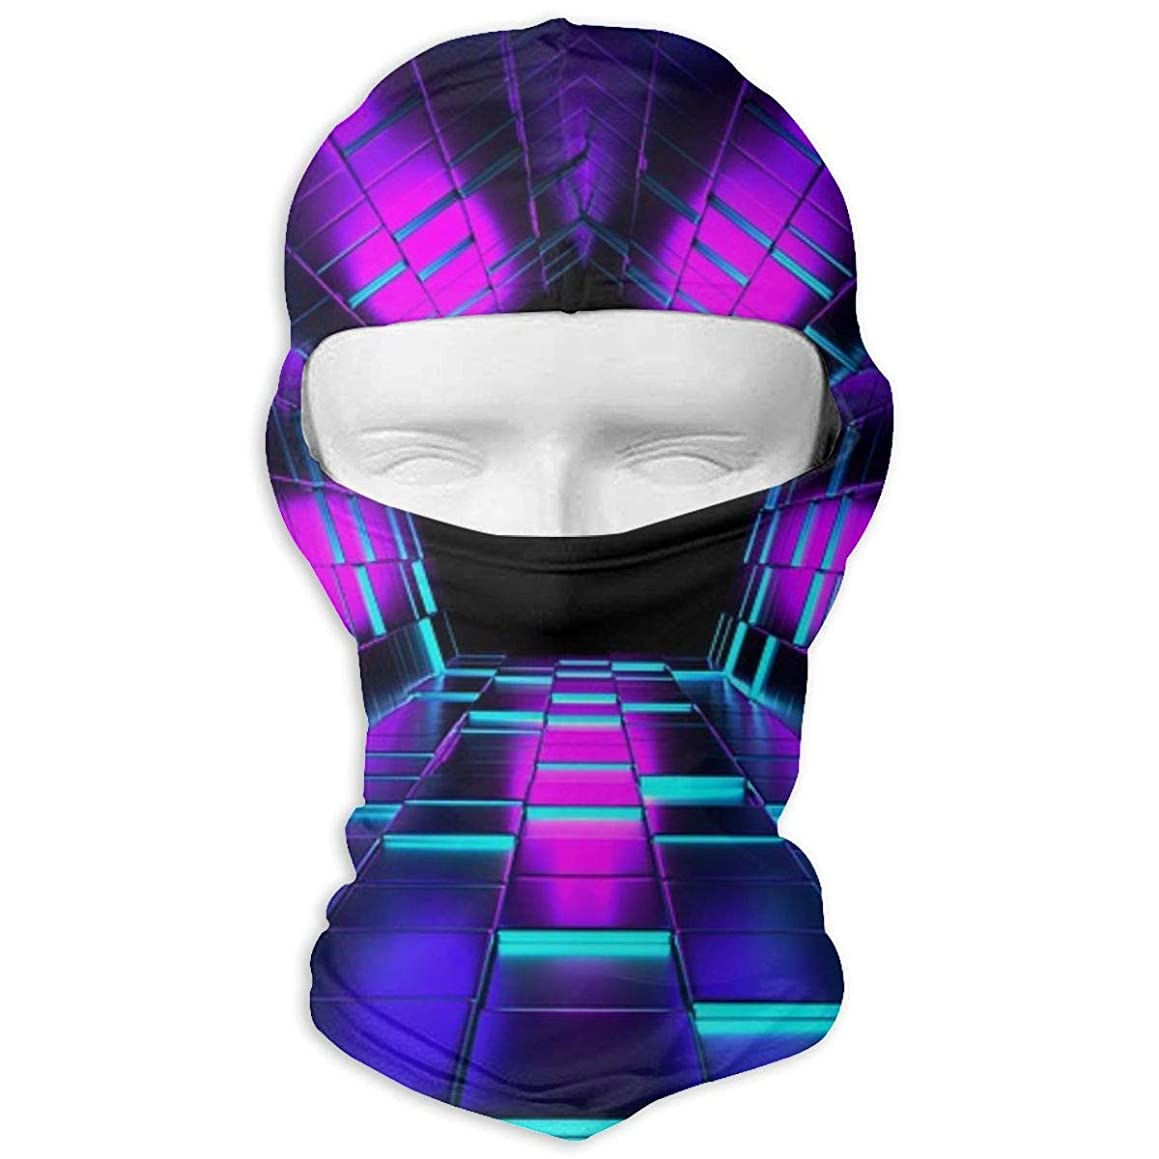 RUSLAN Full Face Mask Hood Sun-Protective Breathable Head Neck Cover Hood for Outdoor Shooting Cyling Motorcycle Sport Strap Printed with Cube